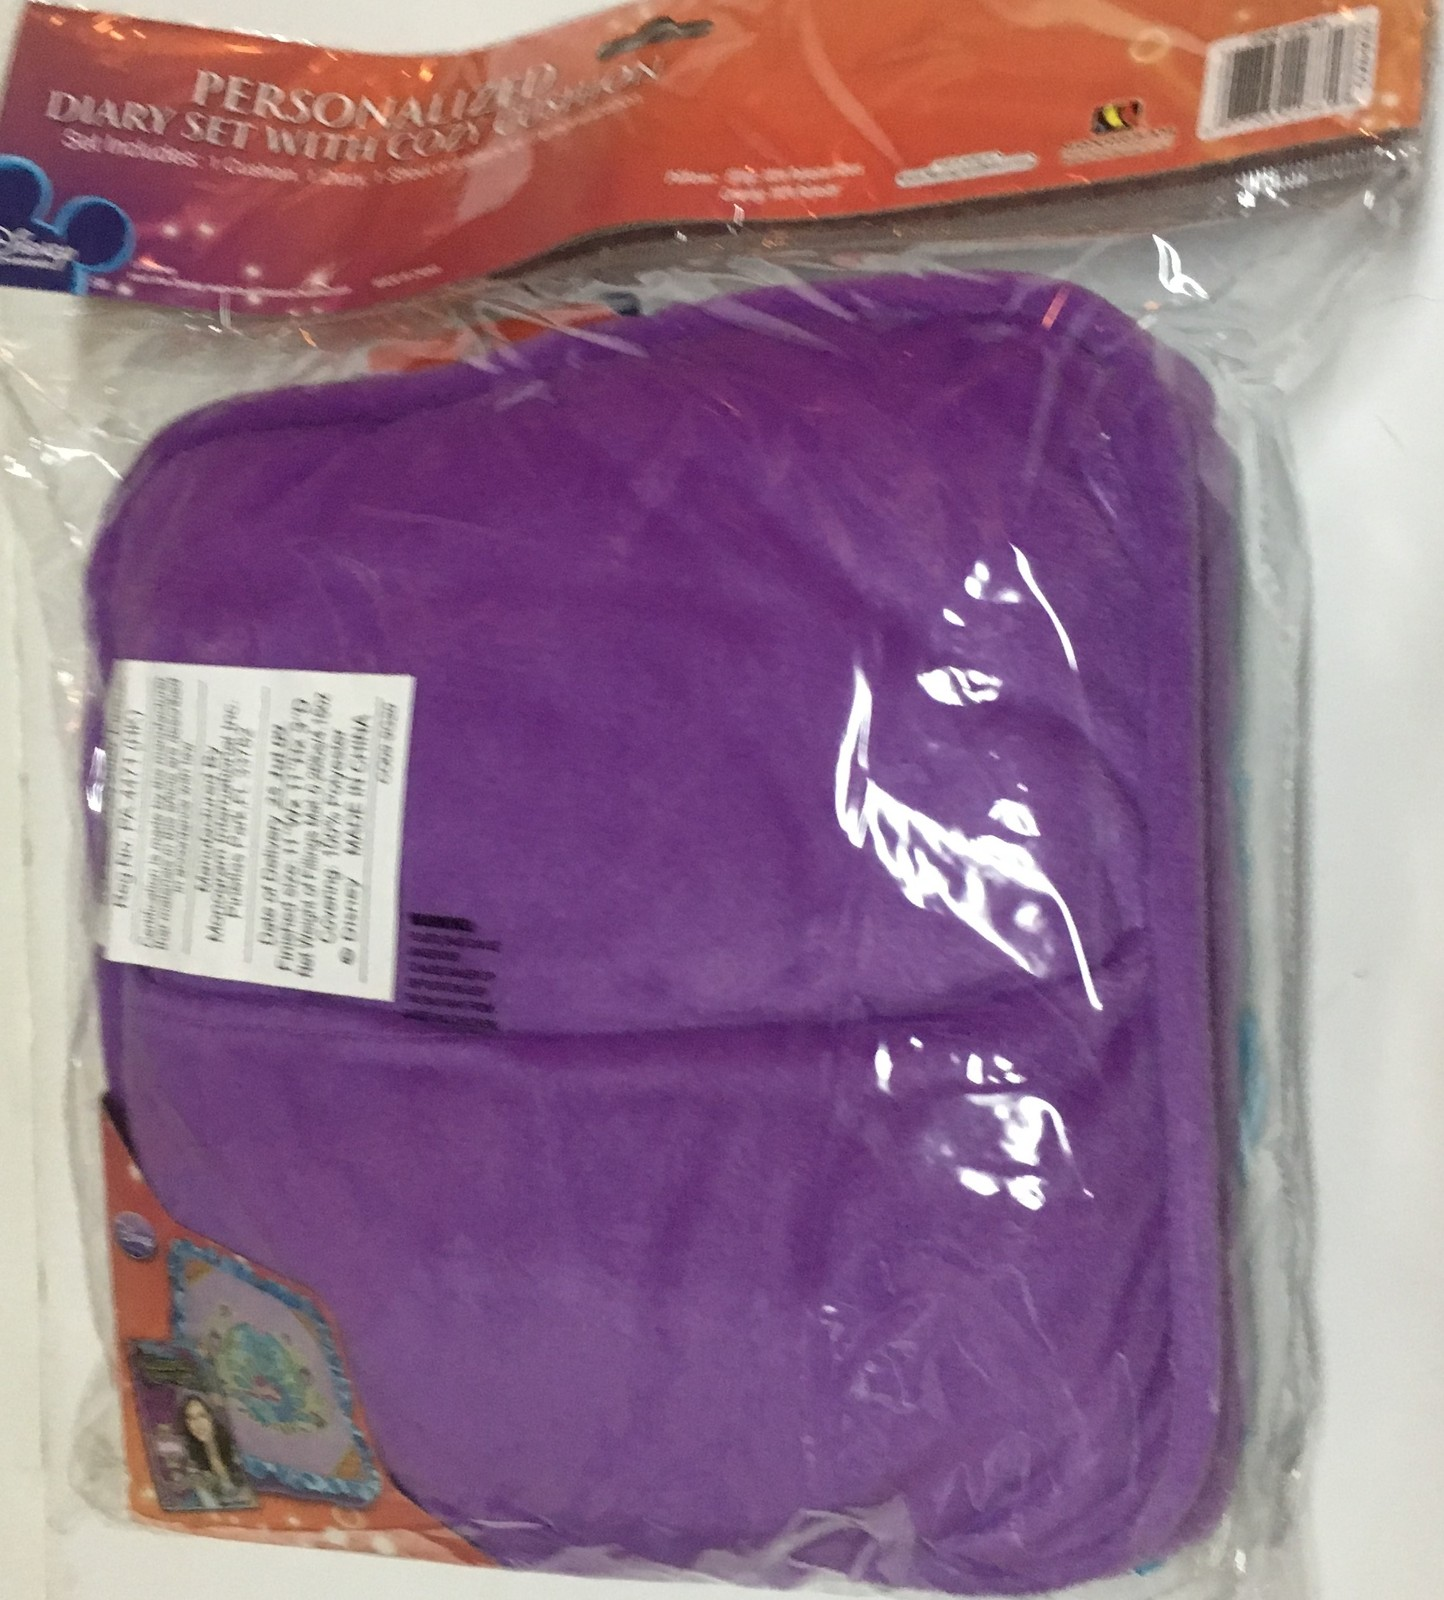 Wizards of Waverly Cushion Pillow & Diary Set Purple